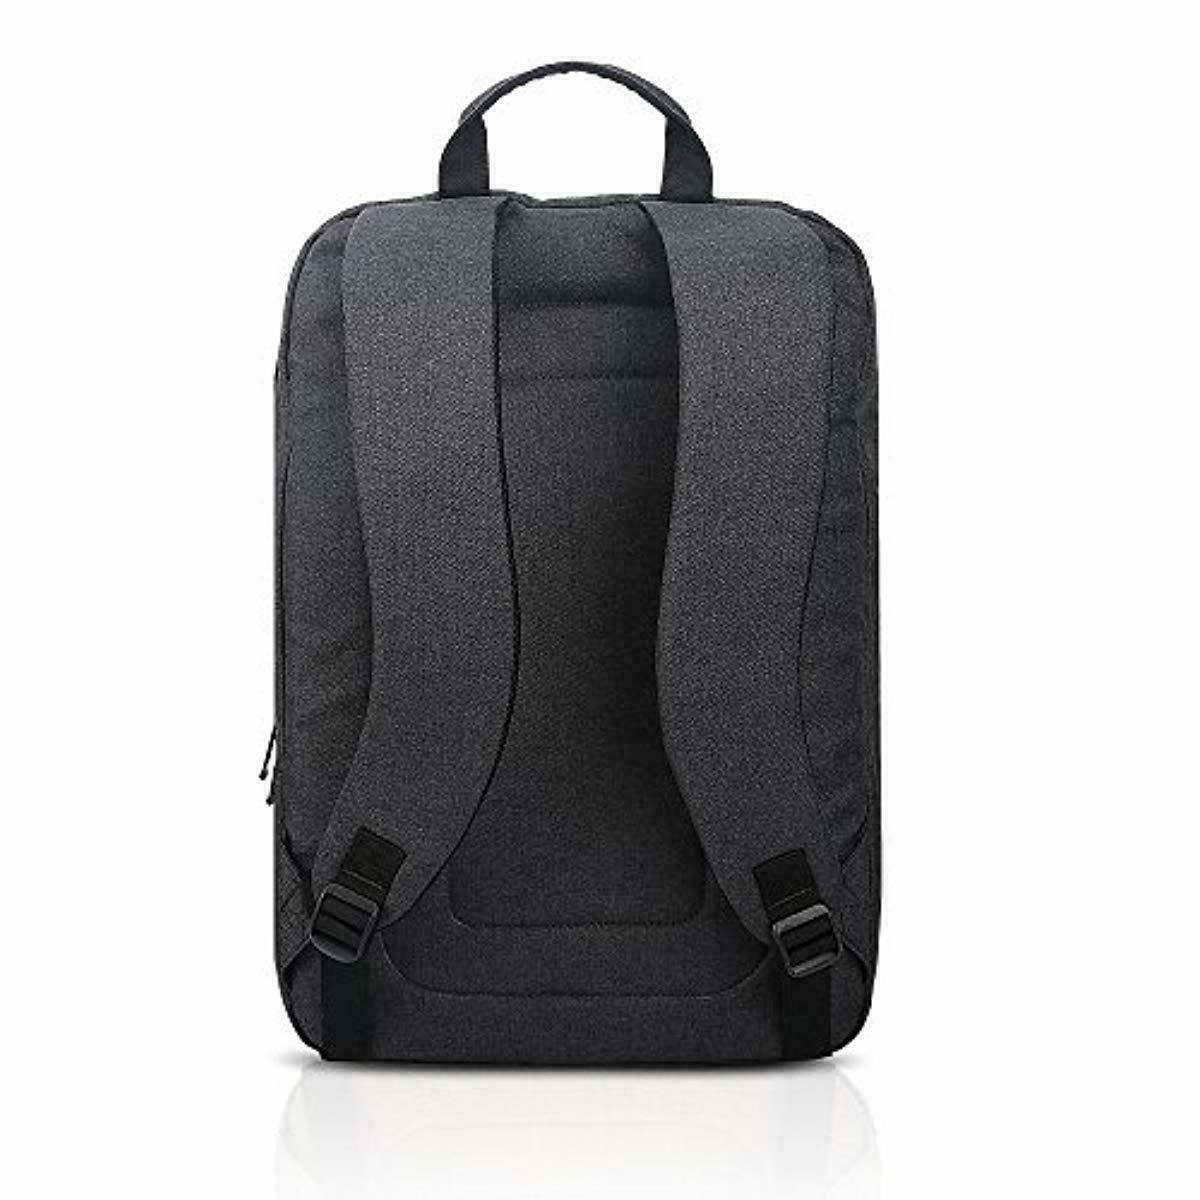 Lenovo Backpack B210, fits 15.6-Inch Tablet, Great Backpack